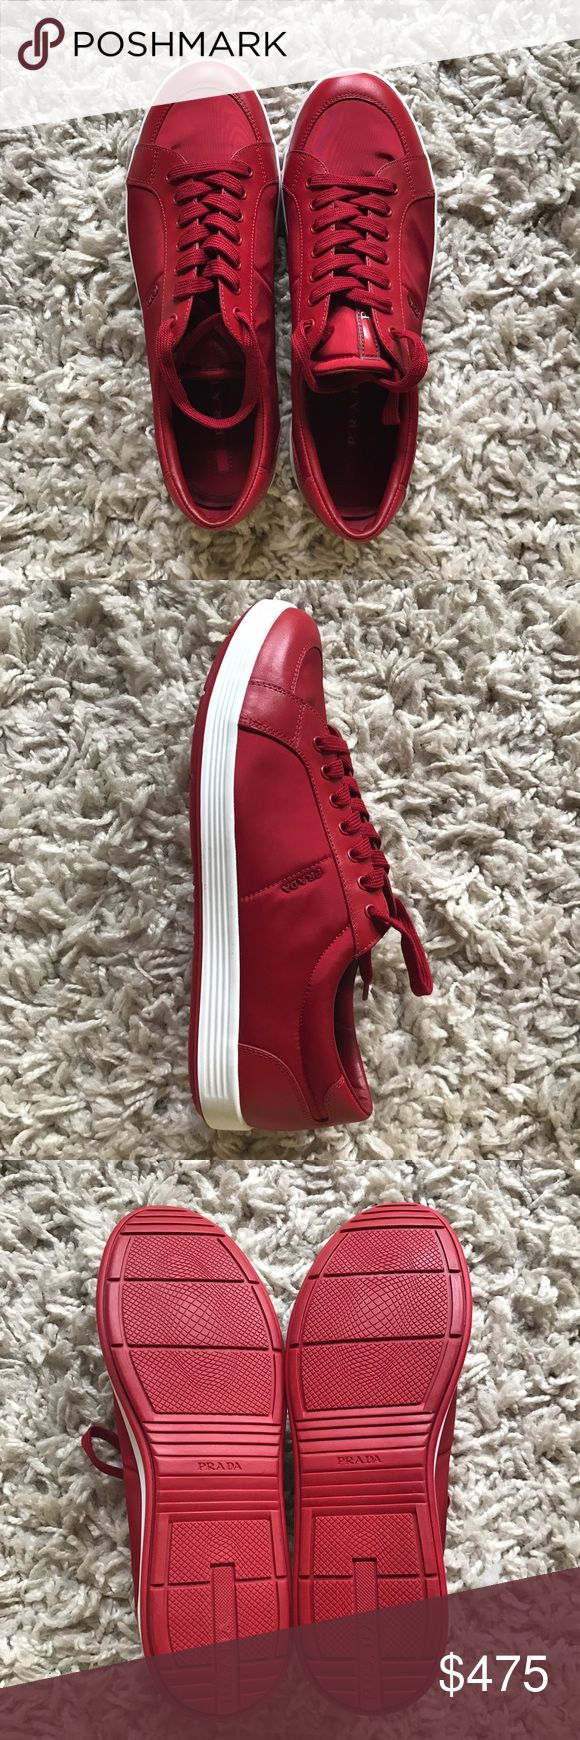 Brand New Prada Sneakers (Men's) Red Leather Prada Men's Sneakers  Brand new, never worn. Perfect condition.  Size 8 (men's) Originally purchased for $600 US dollars in Italy.  Leather and nylon. Prada Shoes Sneakers